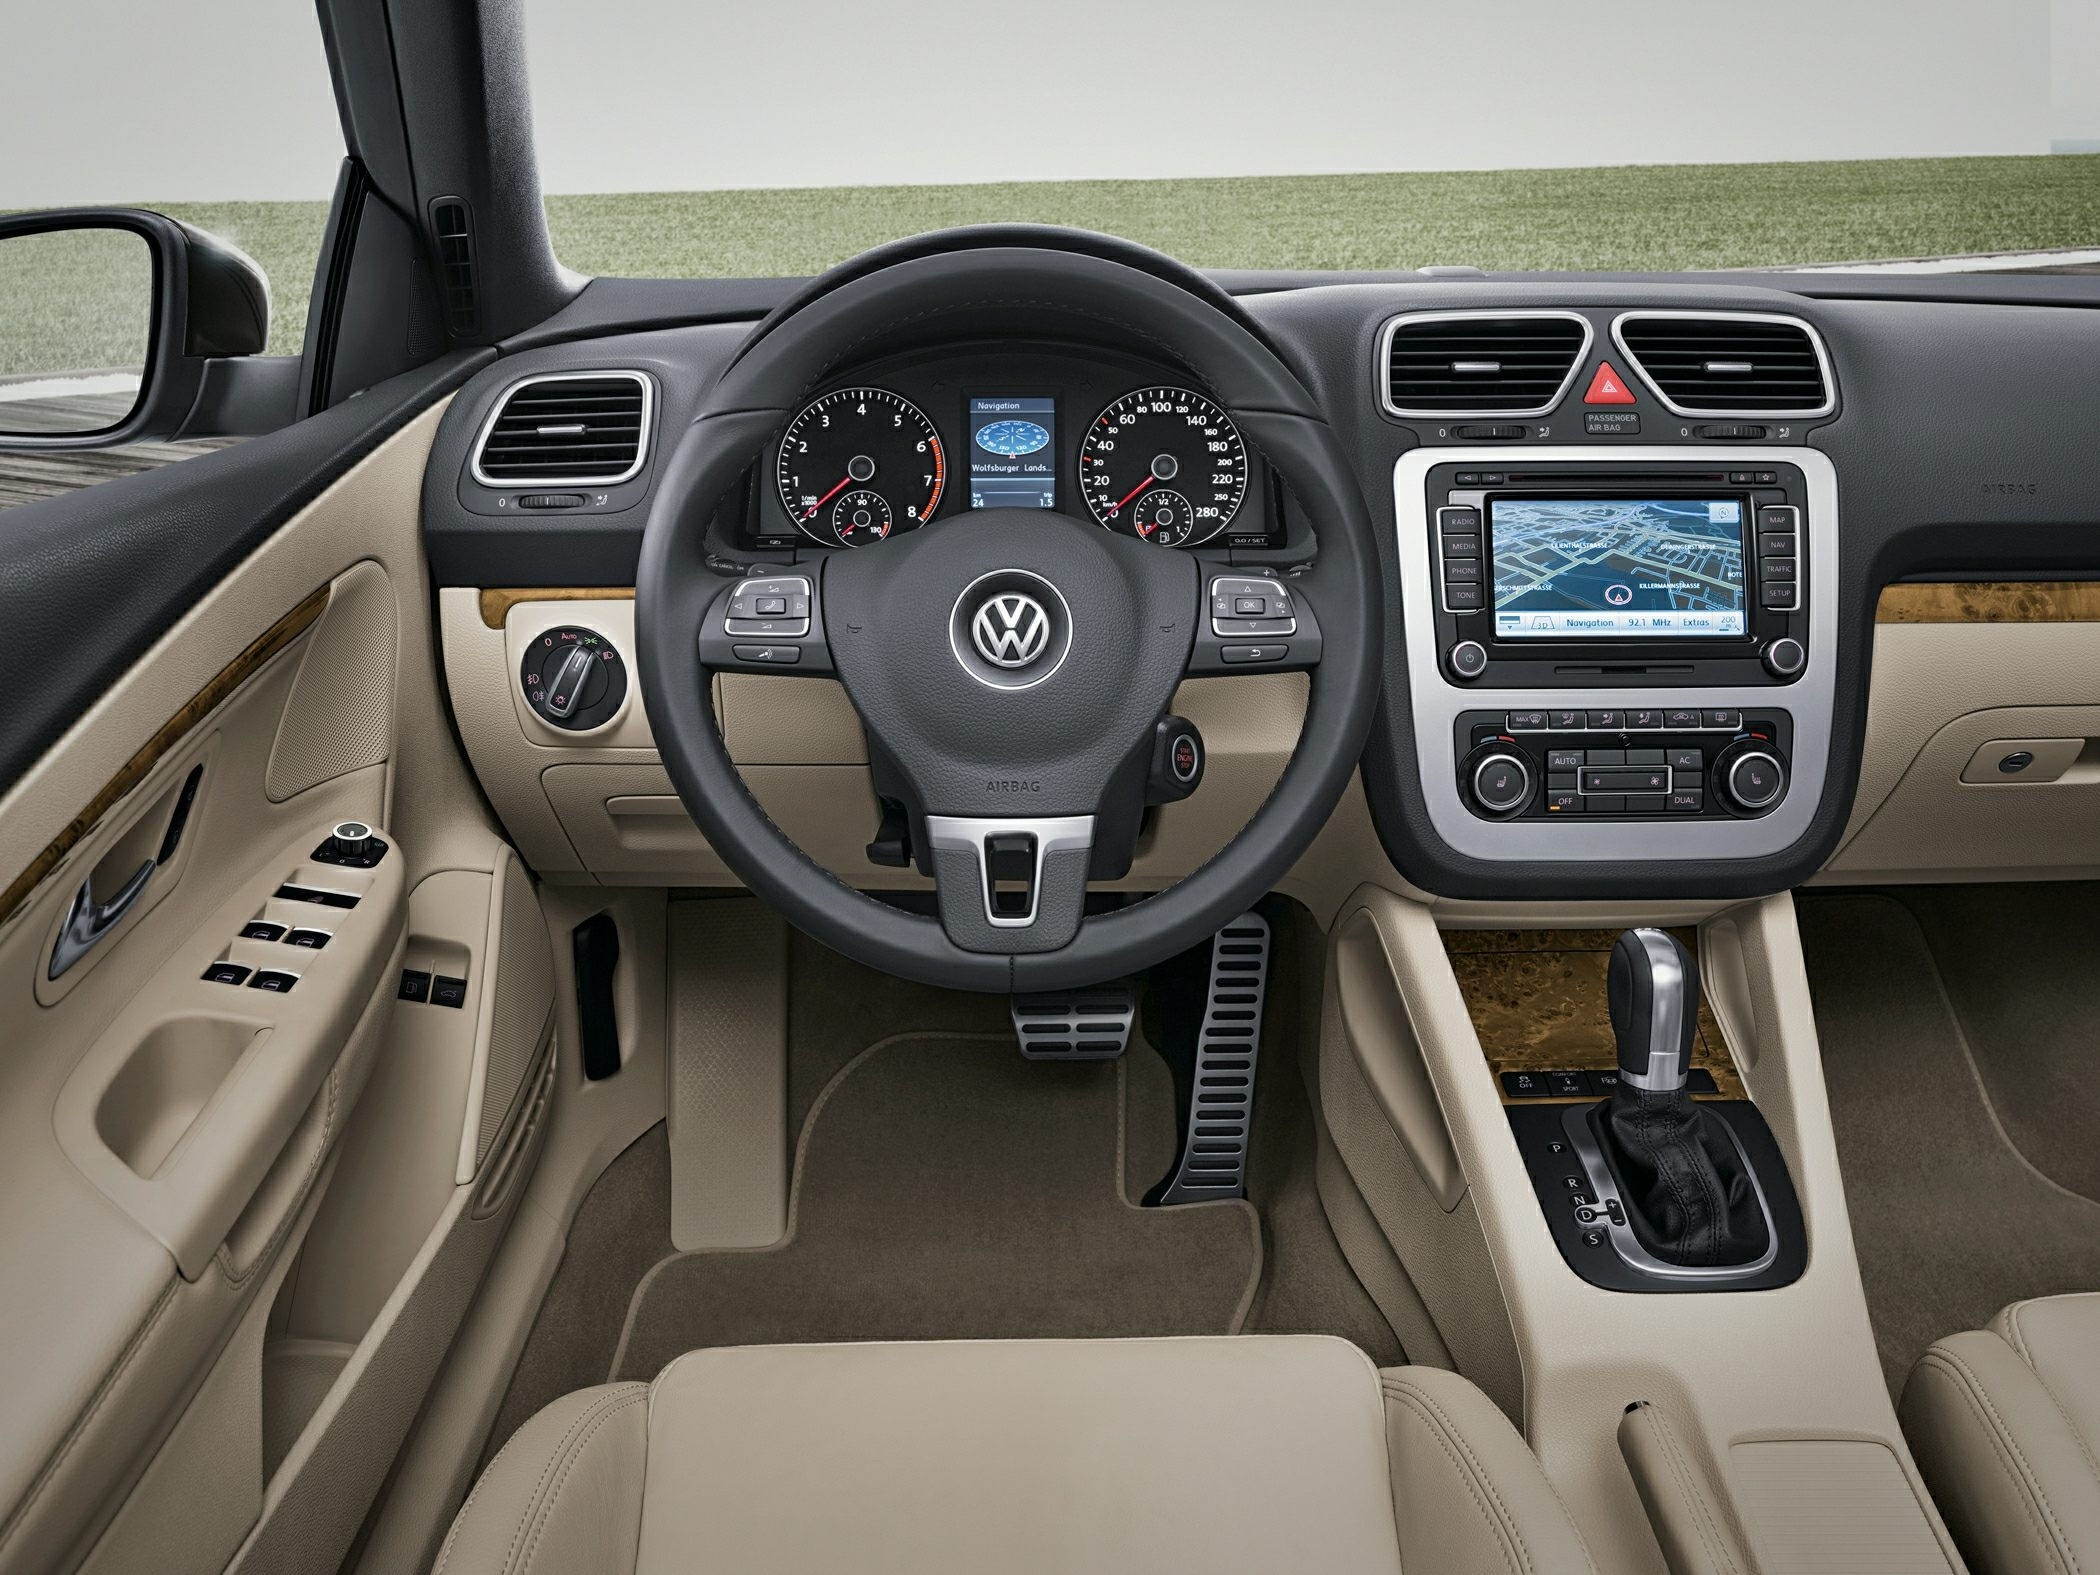 2014 volkswagen eos interior msrp not available invoice price vw invoice pricing